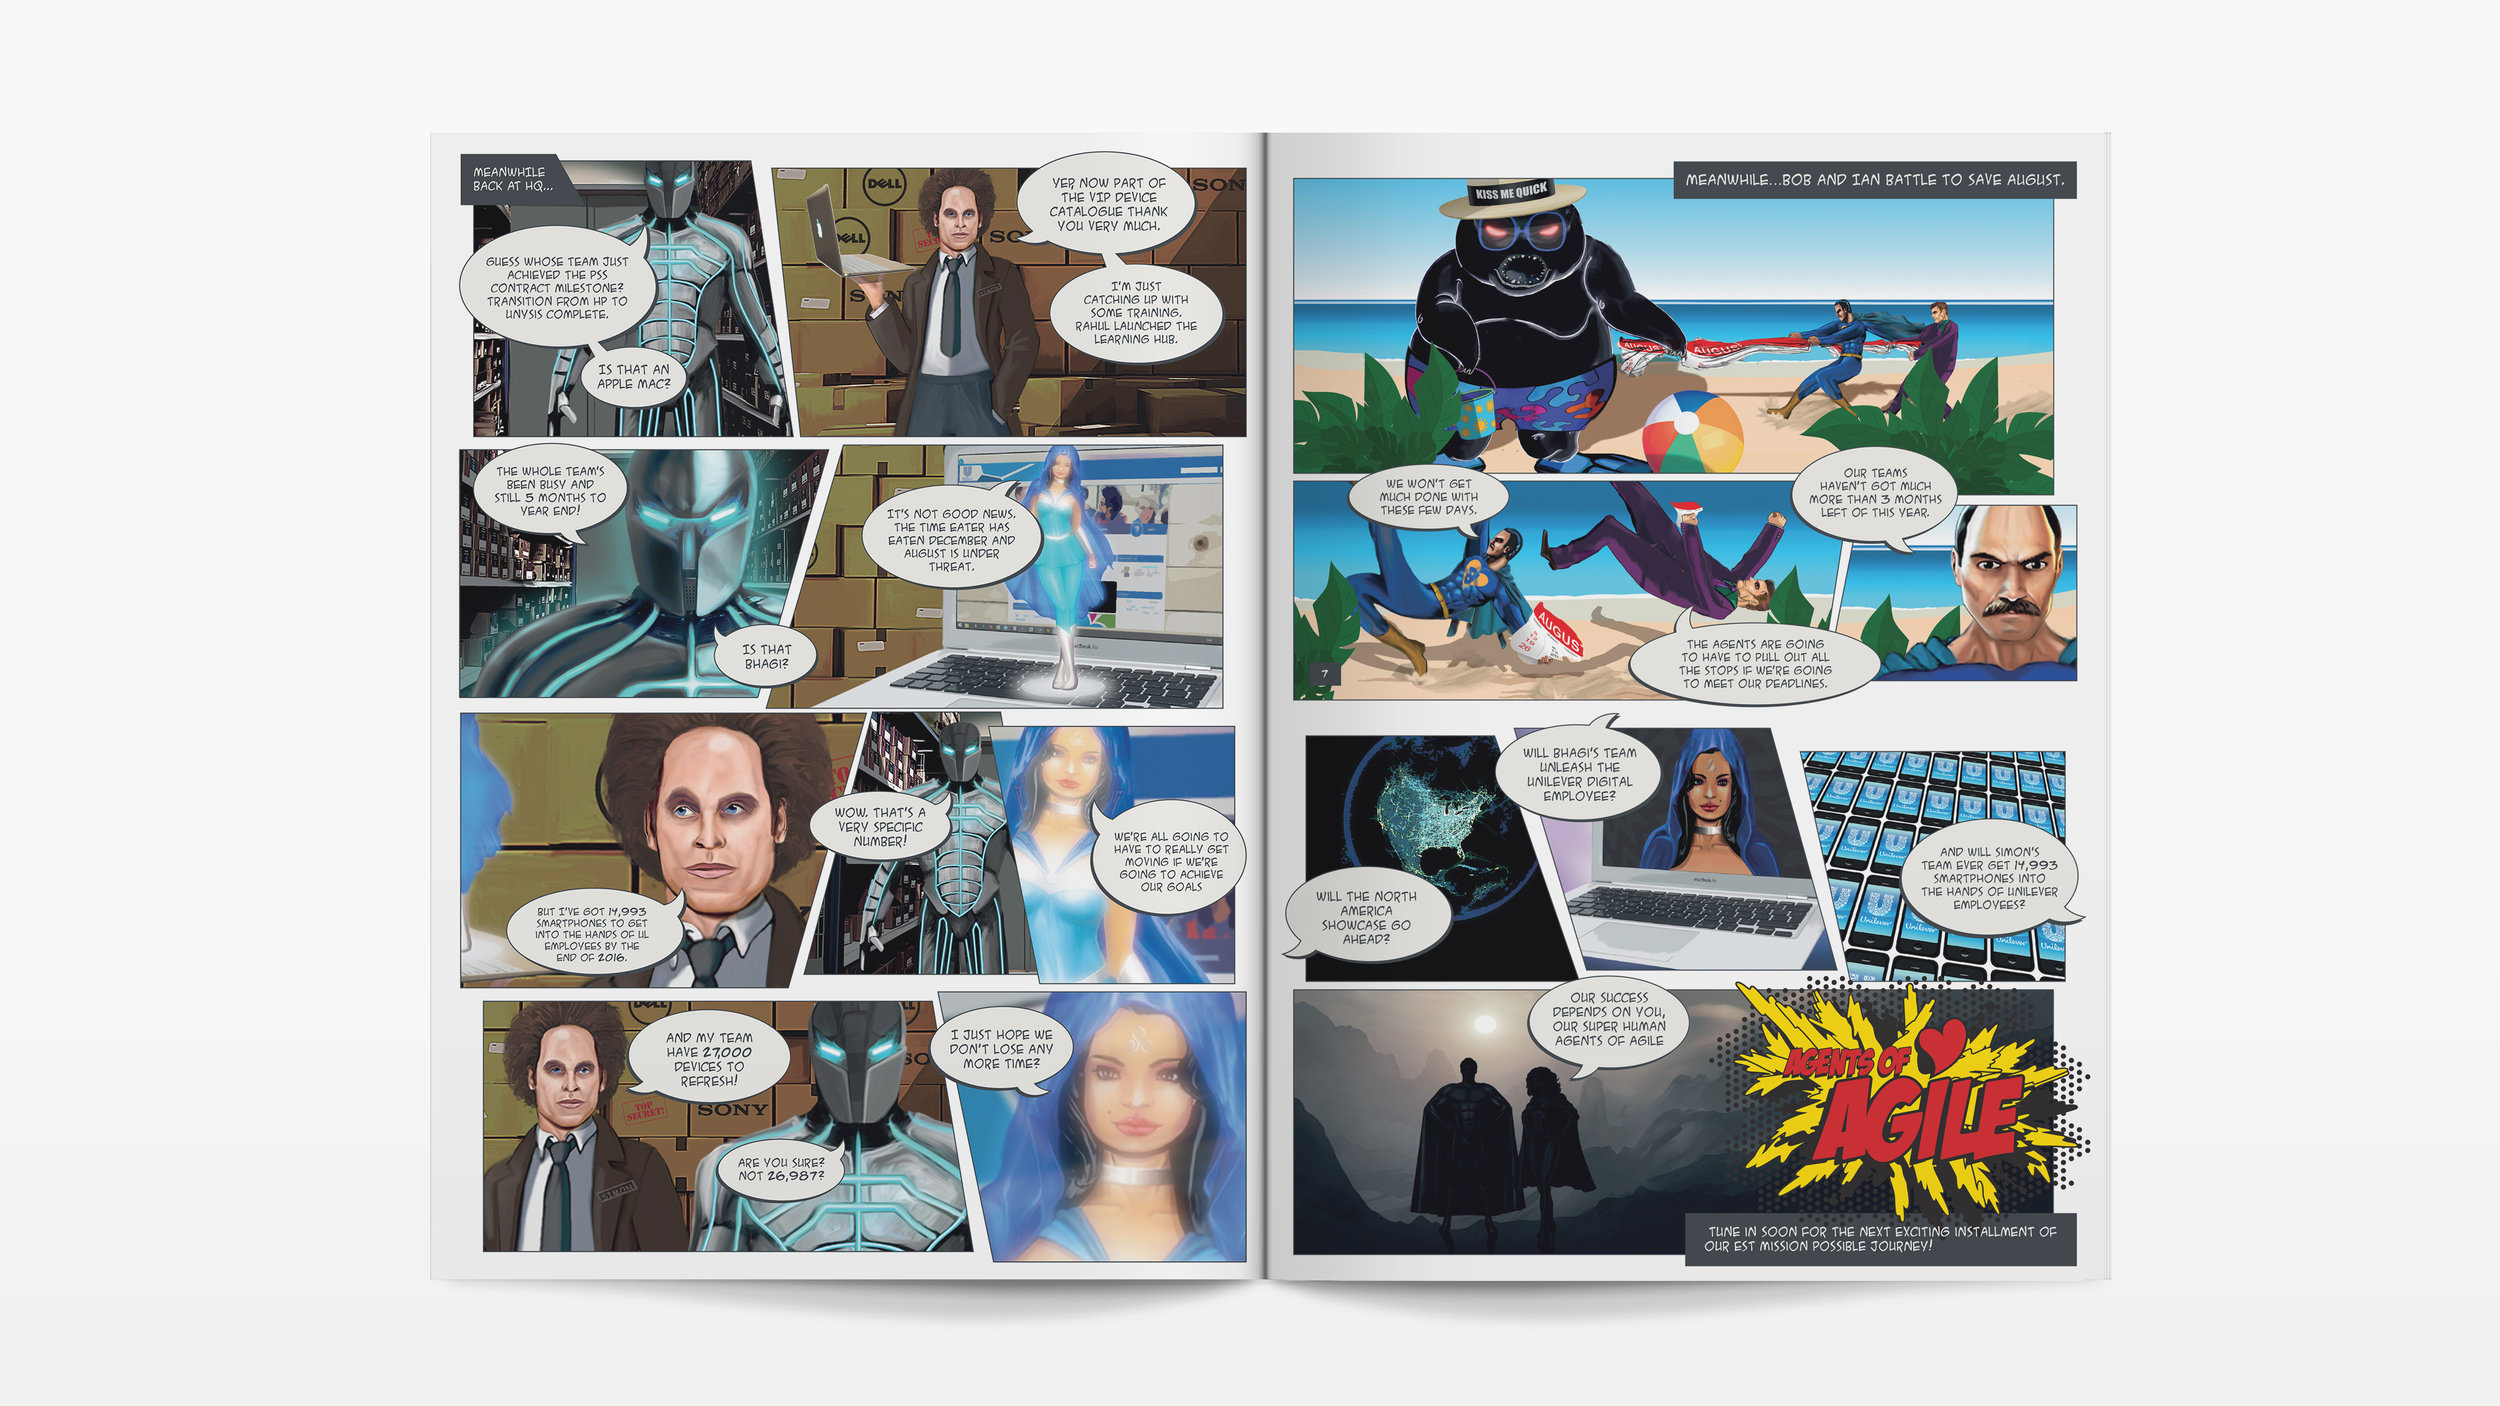 Brand_republica_unilever_internal_campaign_comic_book_design_spread_02.jpg